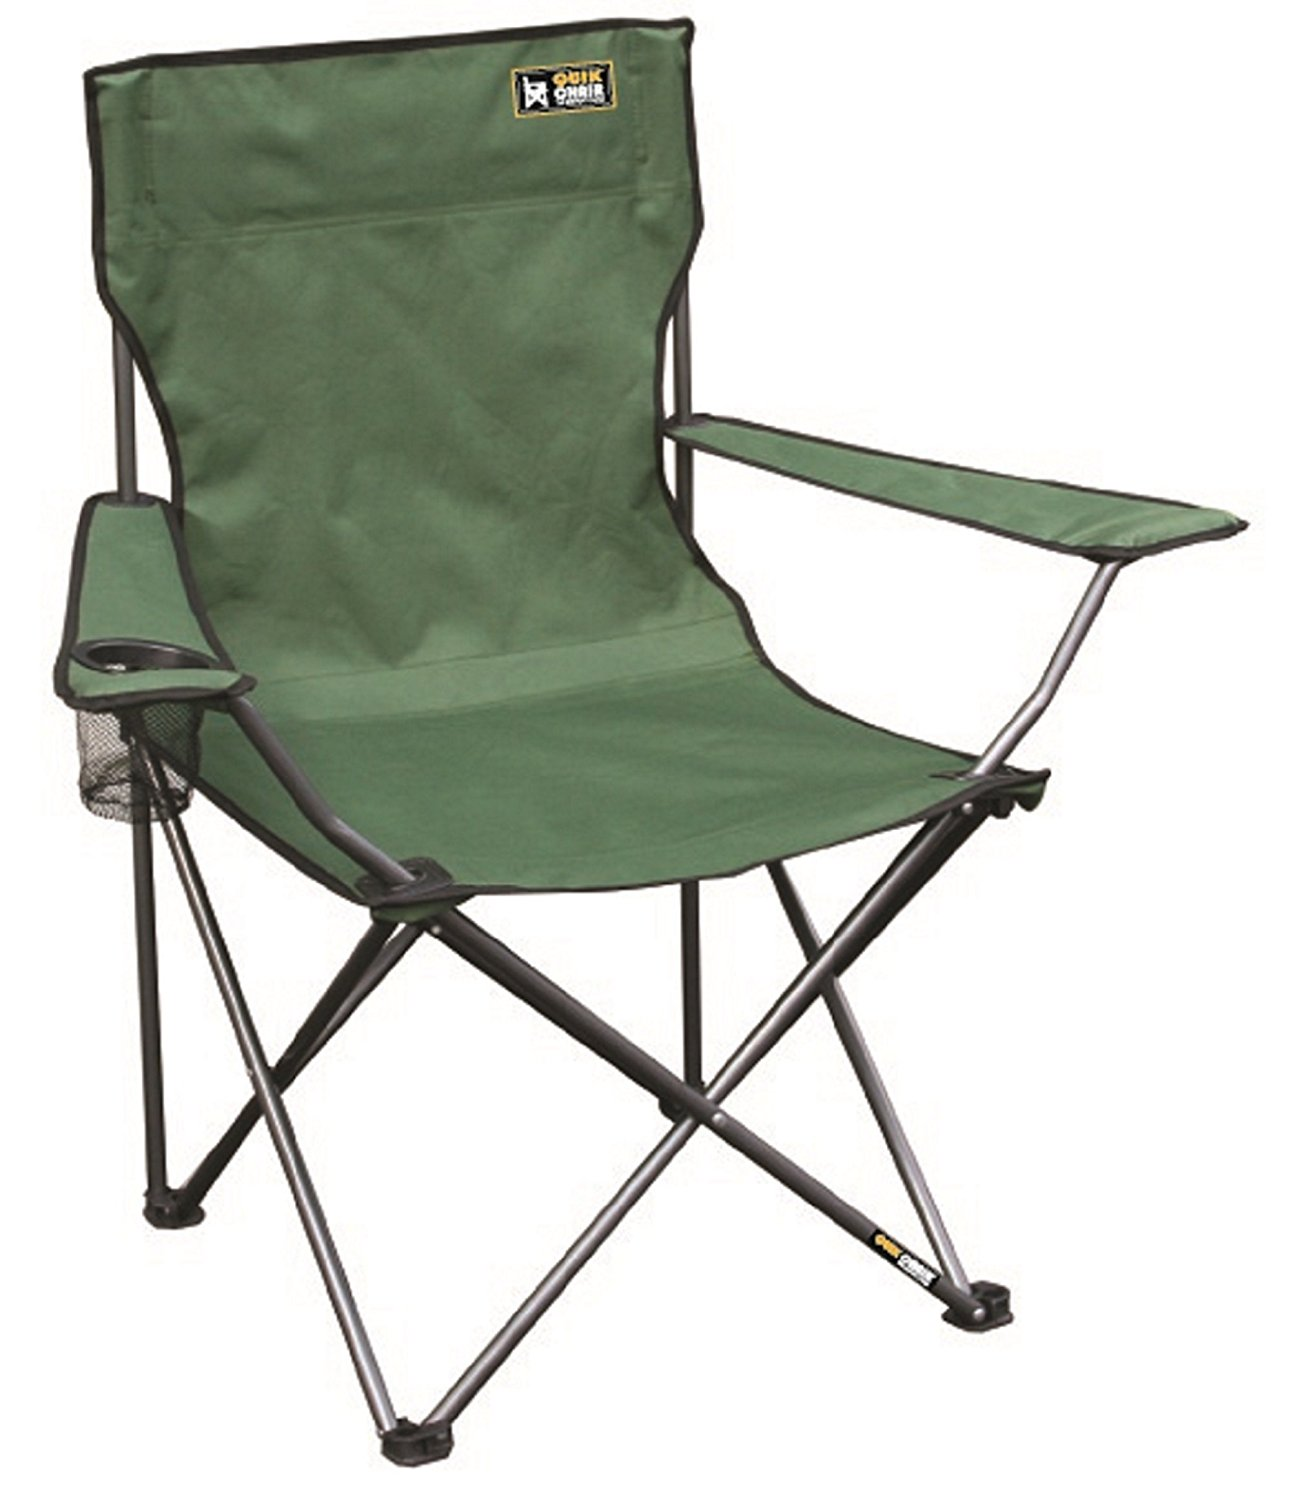 camp chairs amazon.com : quik chair folding quad mesh camp chair - blue : camping chairs YVQYCMB